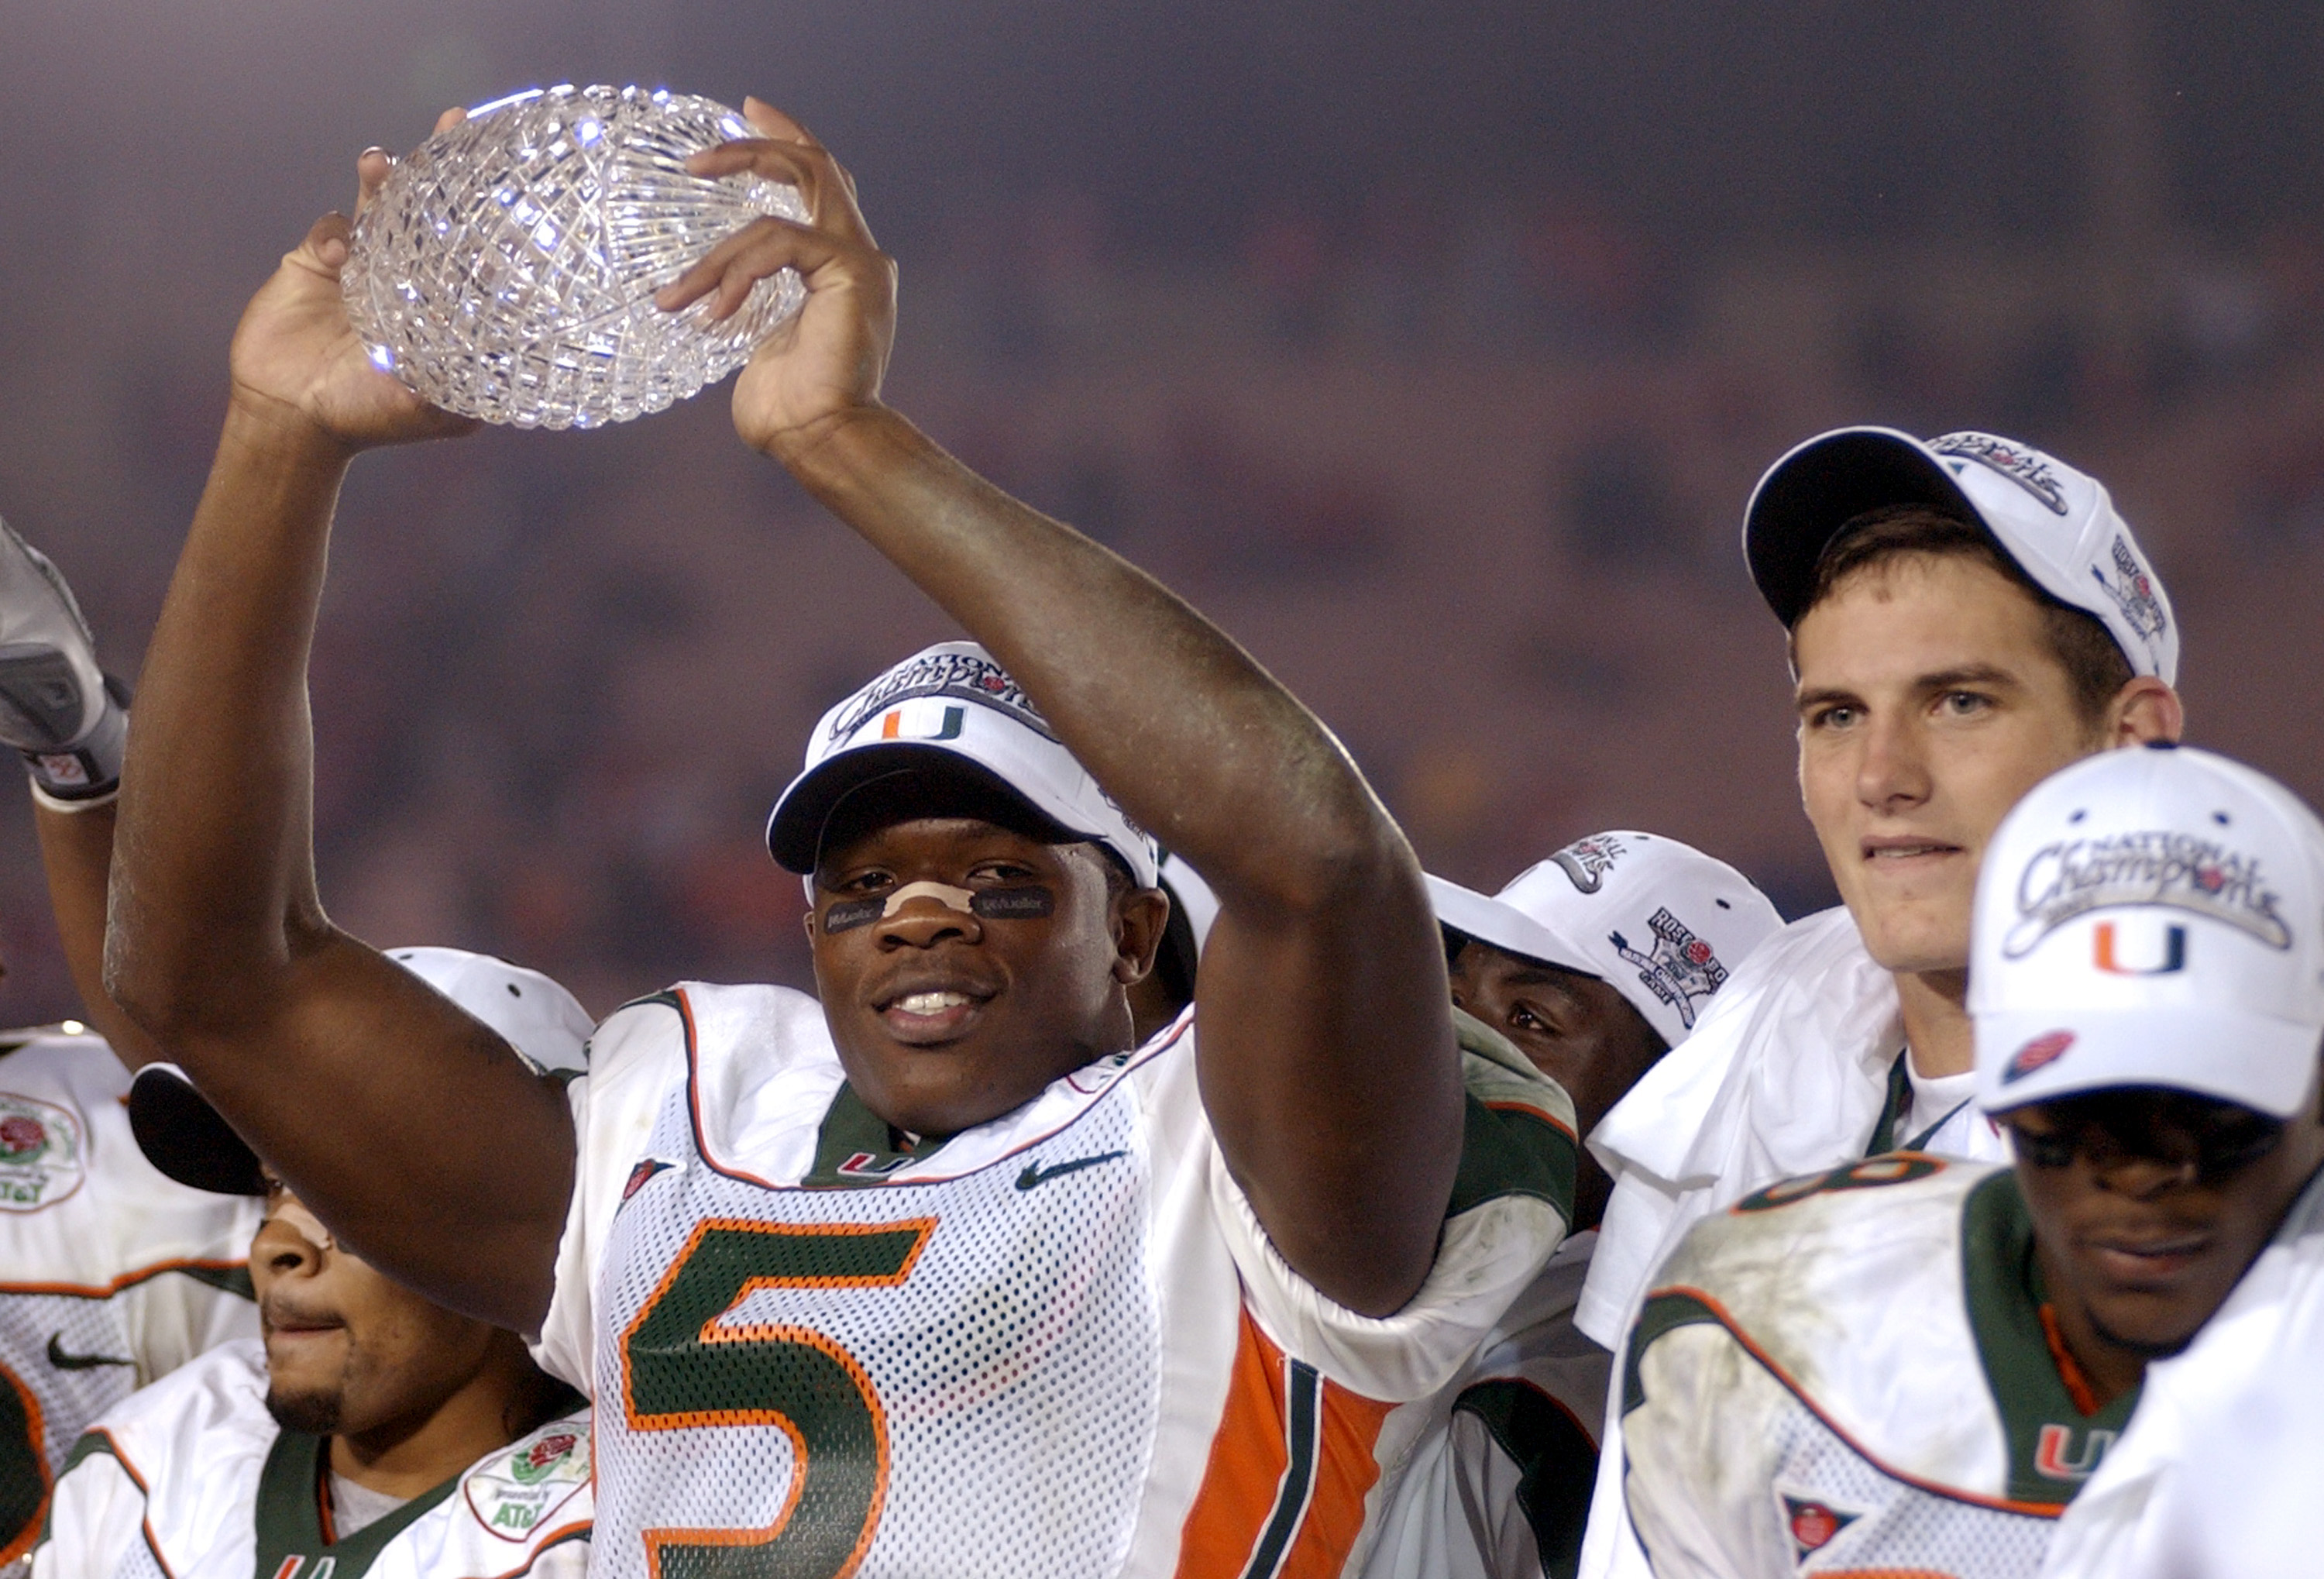 Miami Hurricanes Beat Nebraska Cornhuskers for National Championship